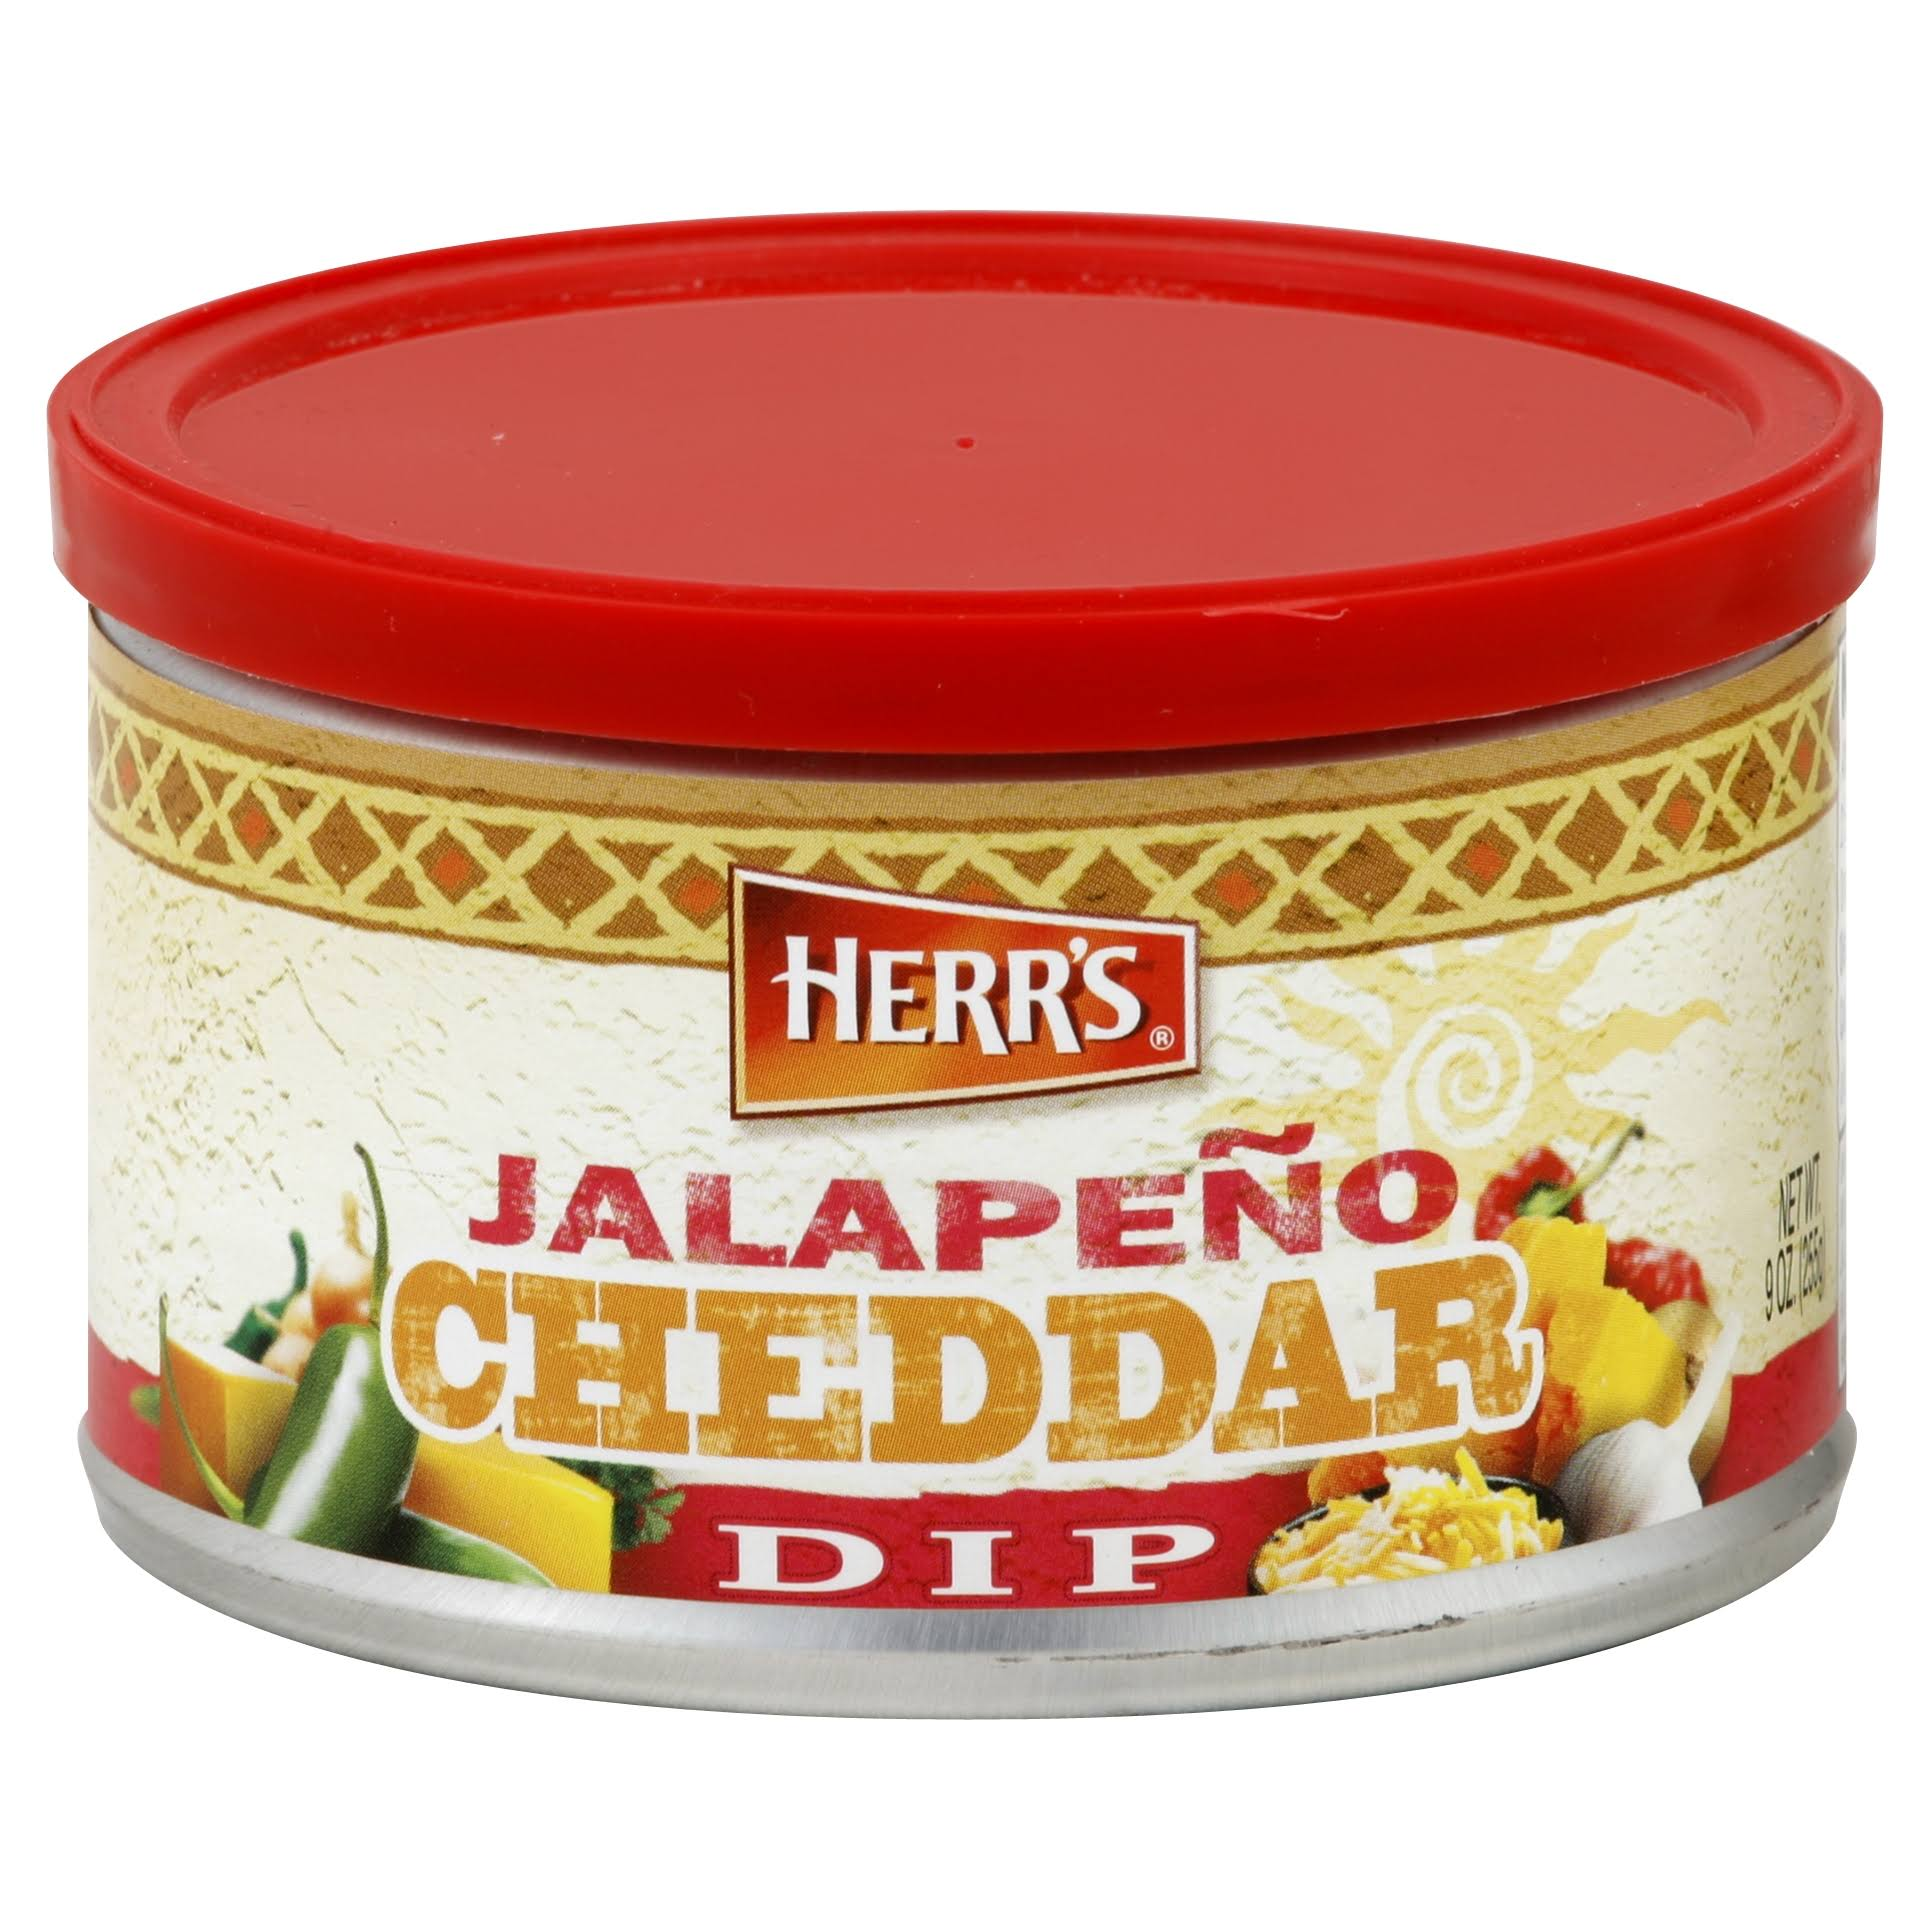 Herrs Jalapeno Cheddar Cheese Dip Sauce - 255g